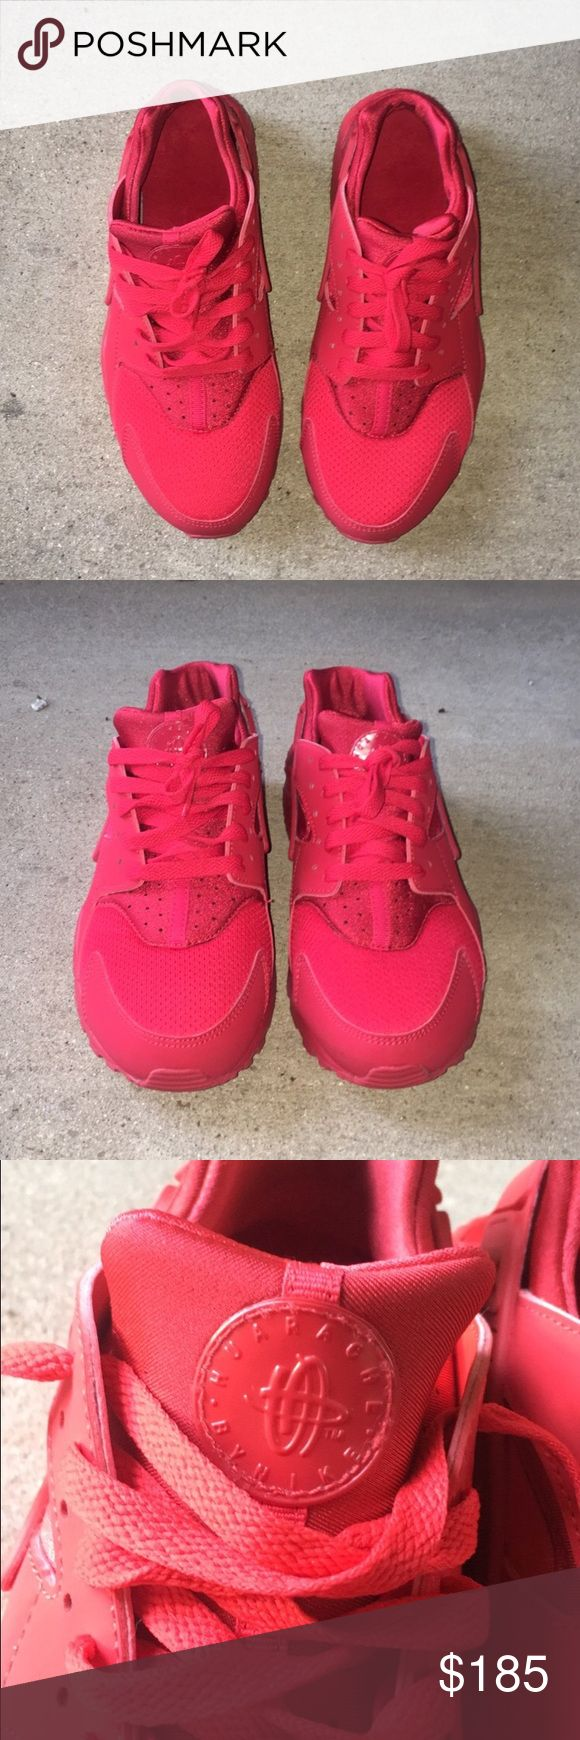 Brand new all red Nike huaraches